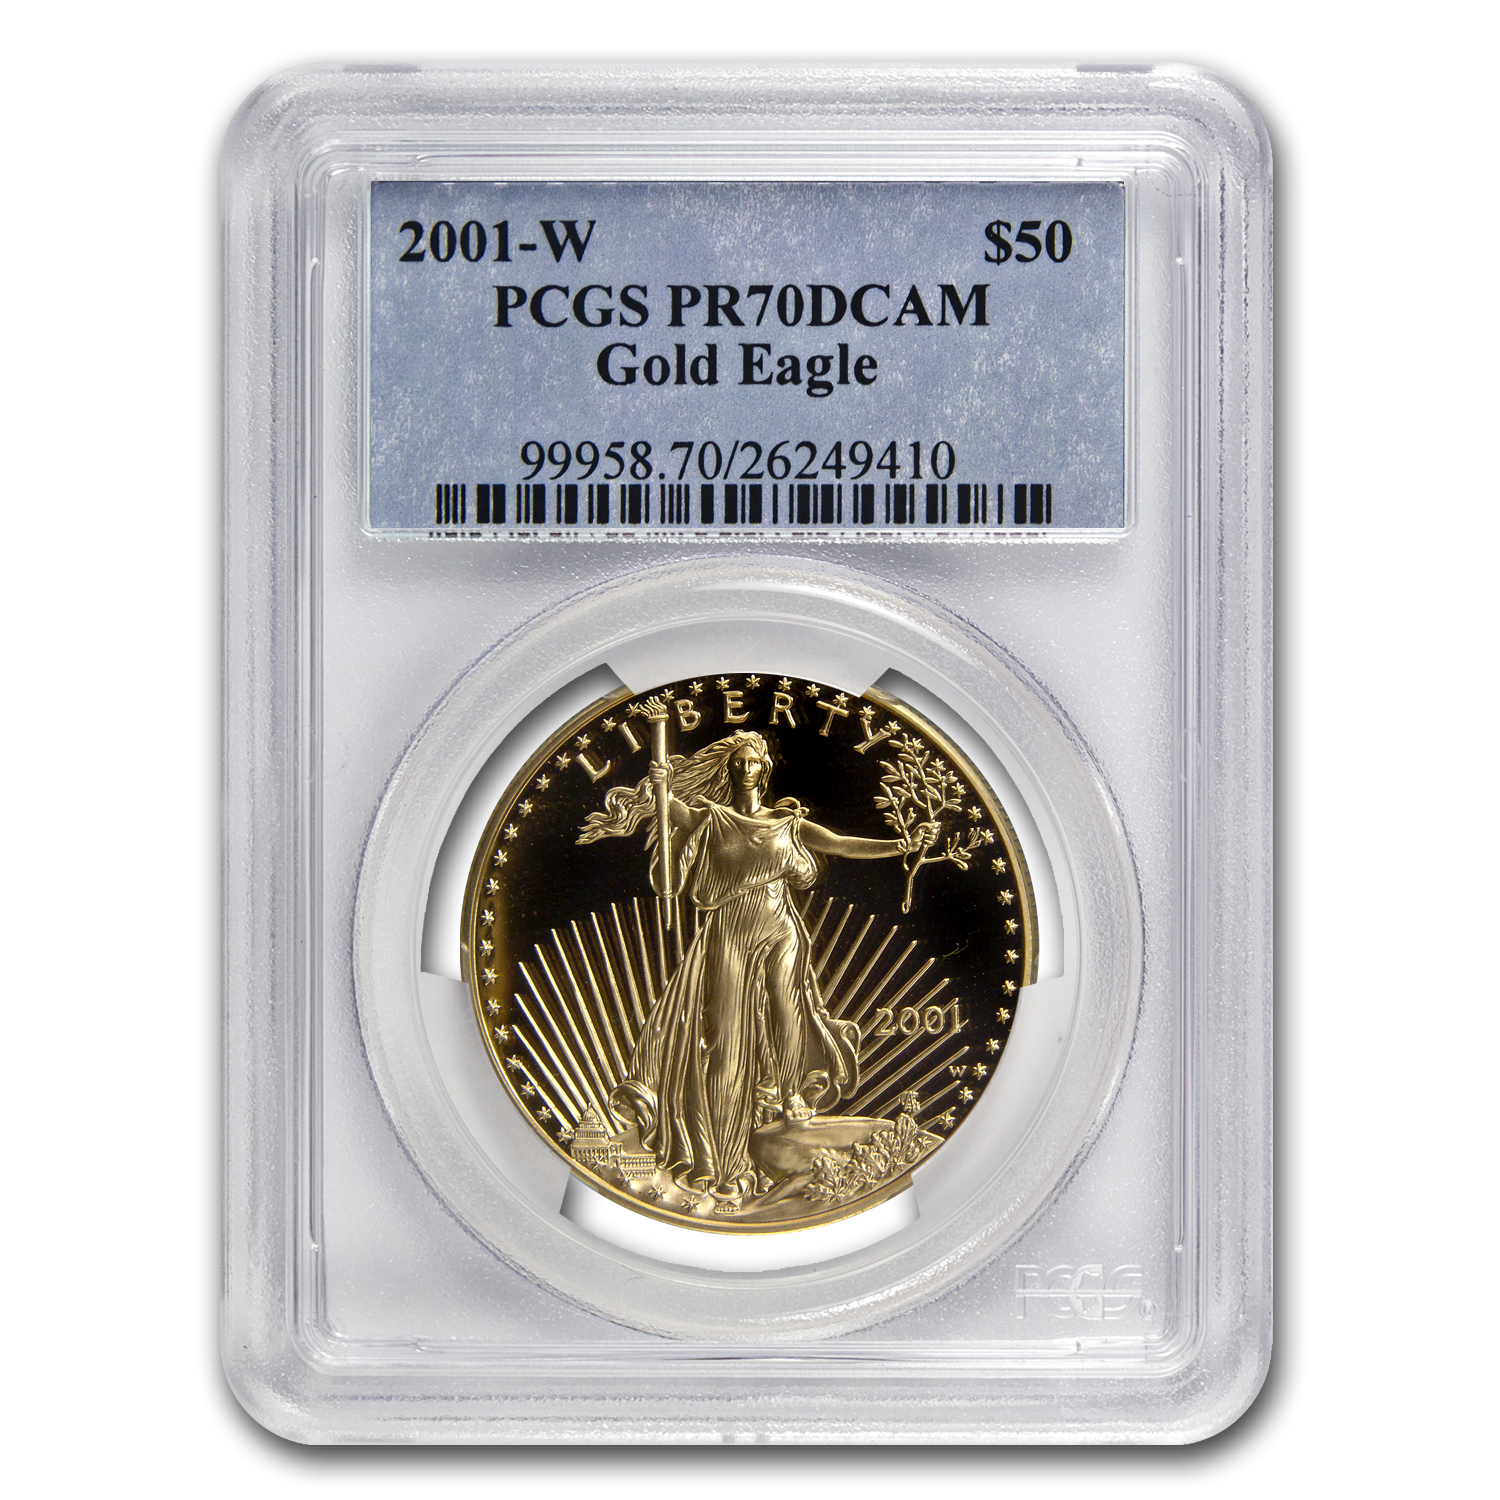 2001-W 1 oz Proof Gold American Eagle PR-70 PCGS (Registry Set)